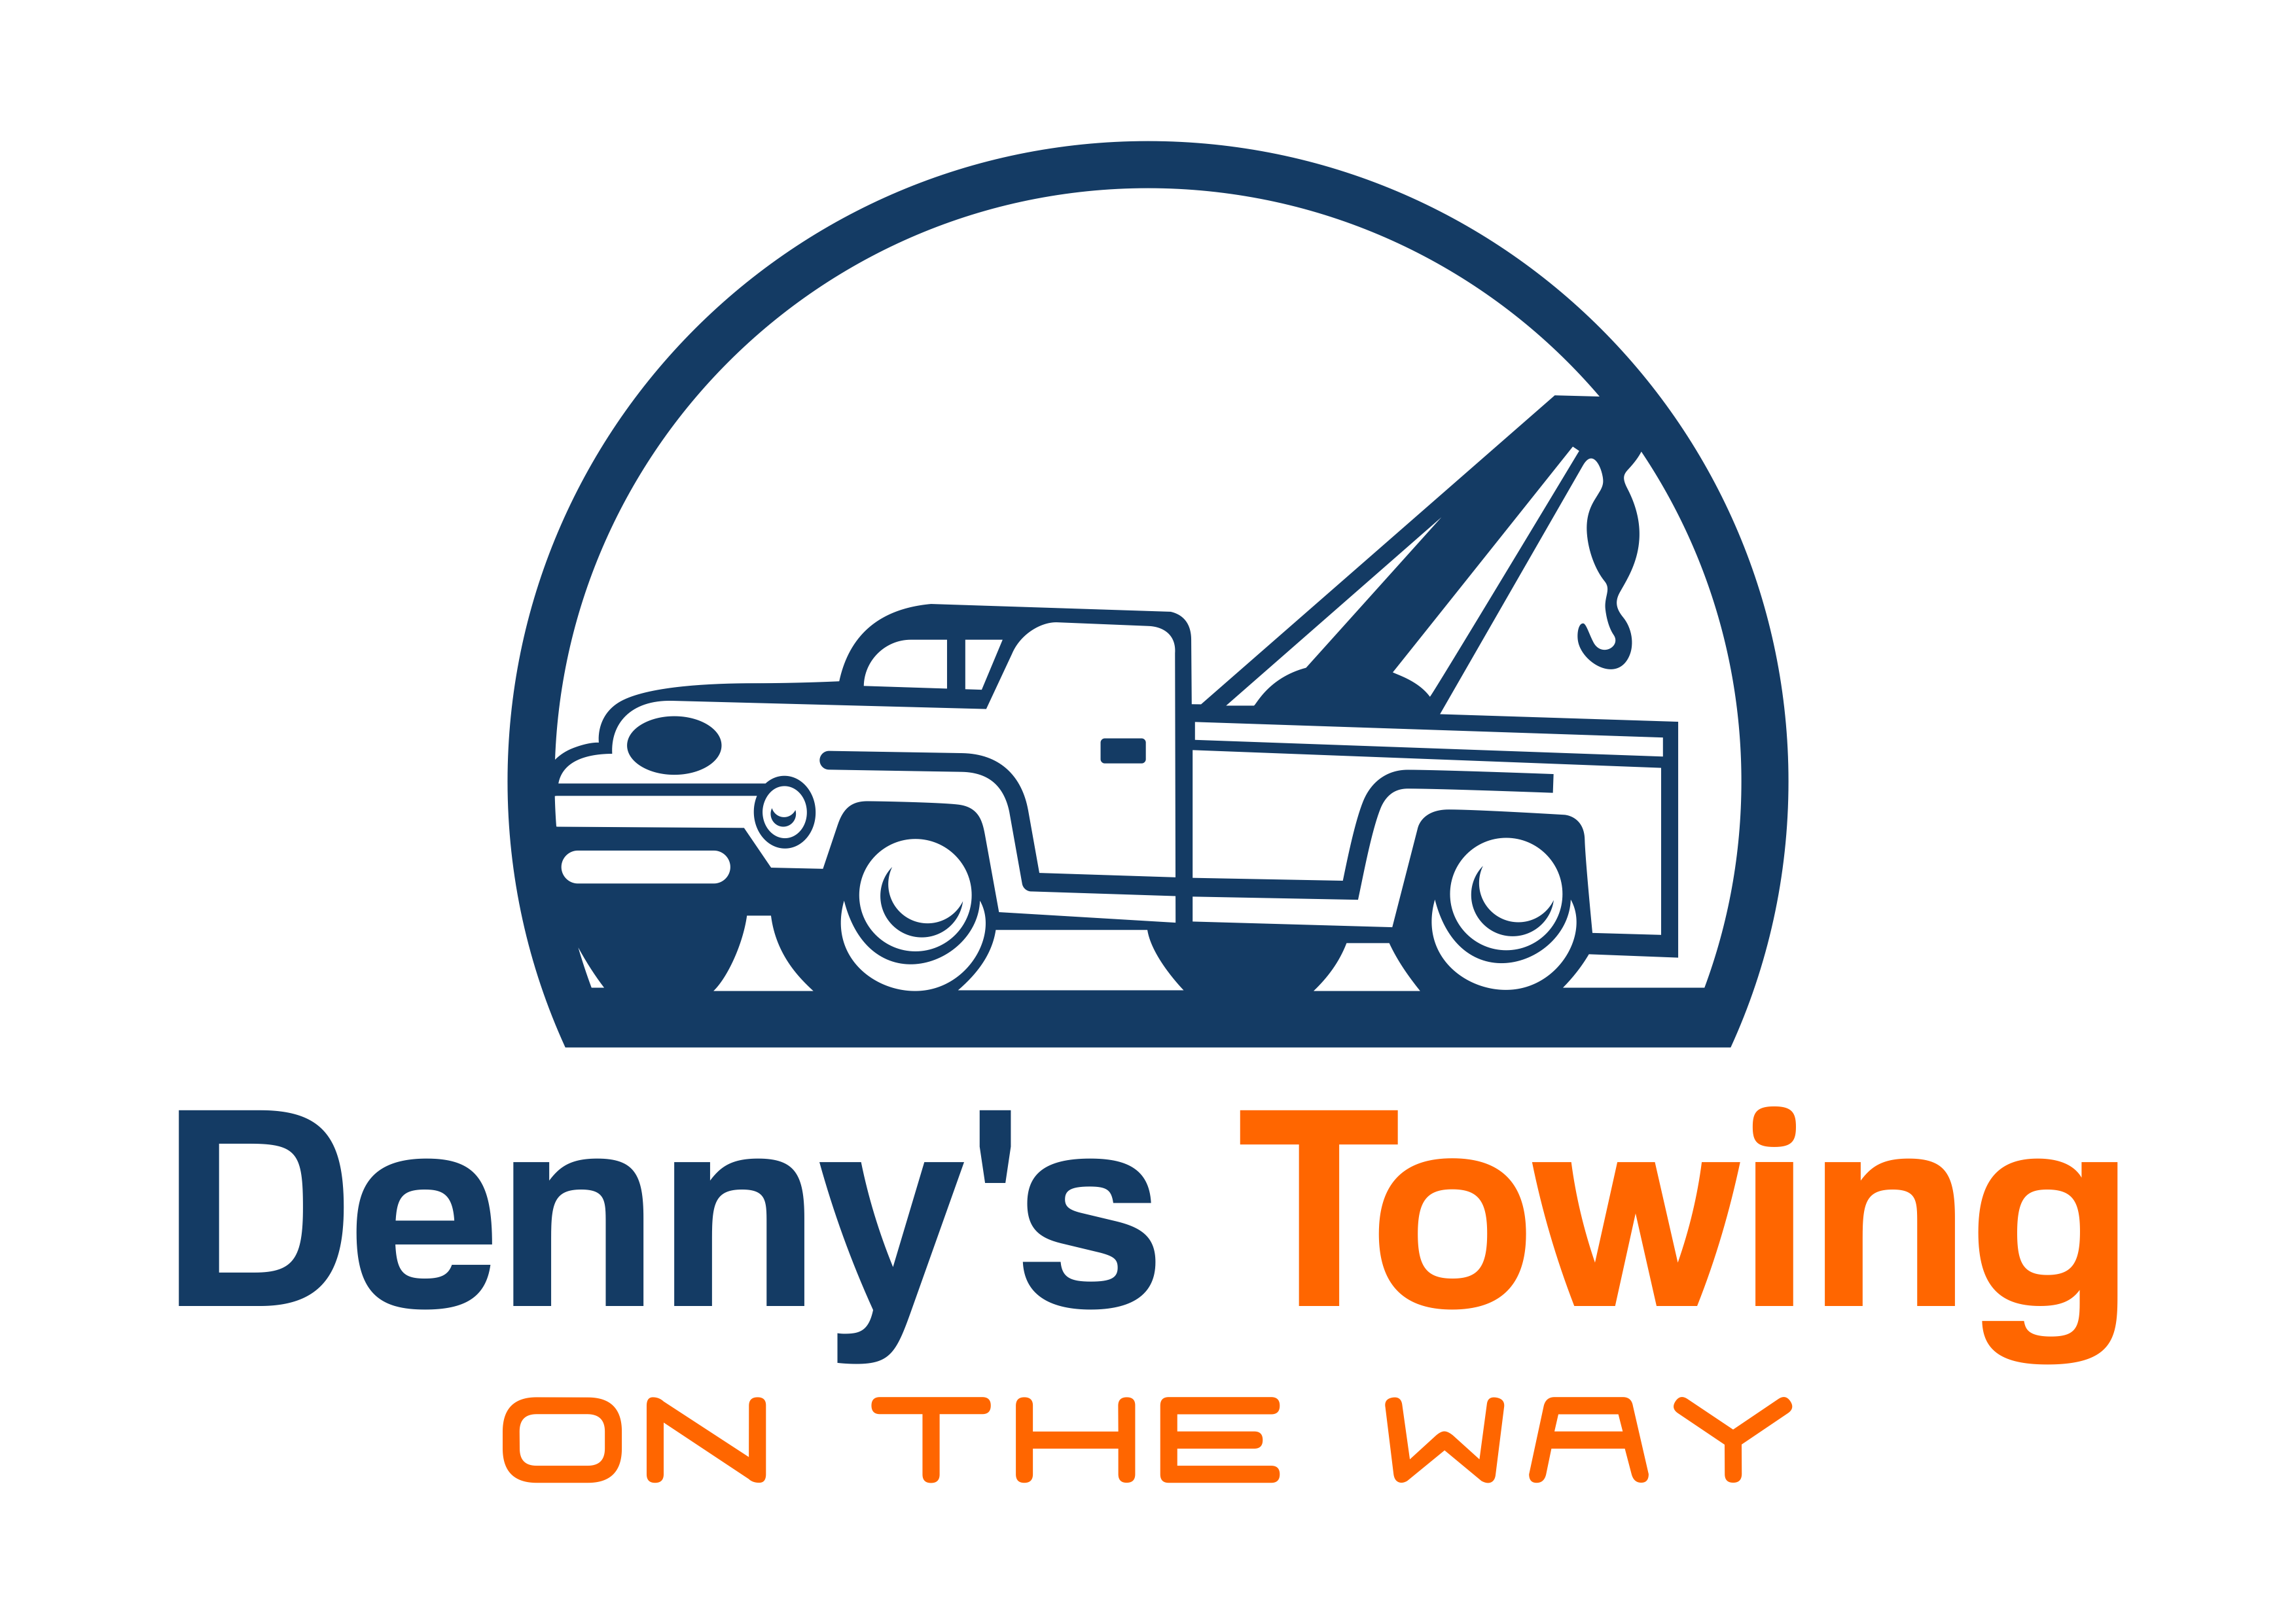 Denny's Towing